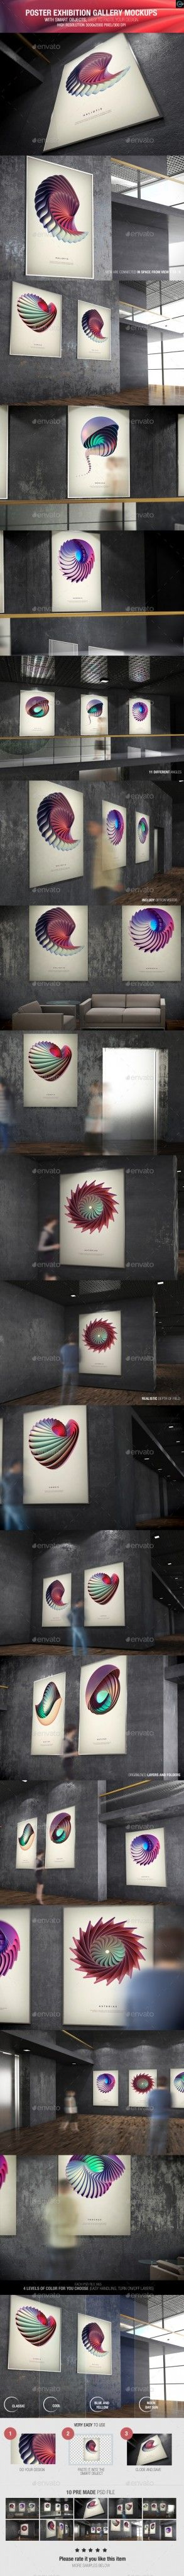 6 poster design photo mockups 57079 - Buy Poster Exhibition Gallery Mockups By Wutip On Graphicriver Poster Exhibition Gallery Mockups With Smart Objects Easy To Paste Your Design 10 Pre Made